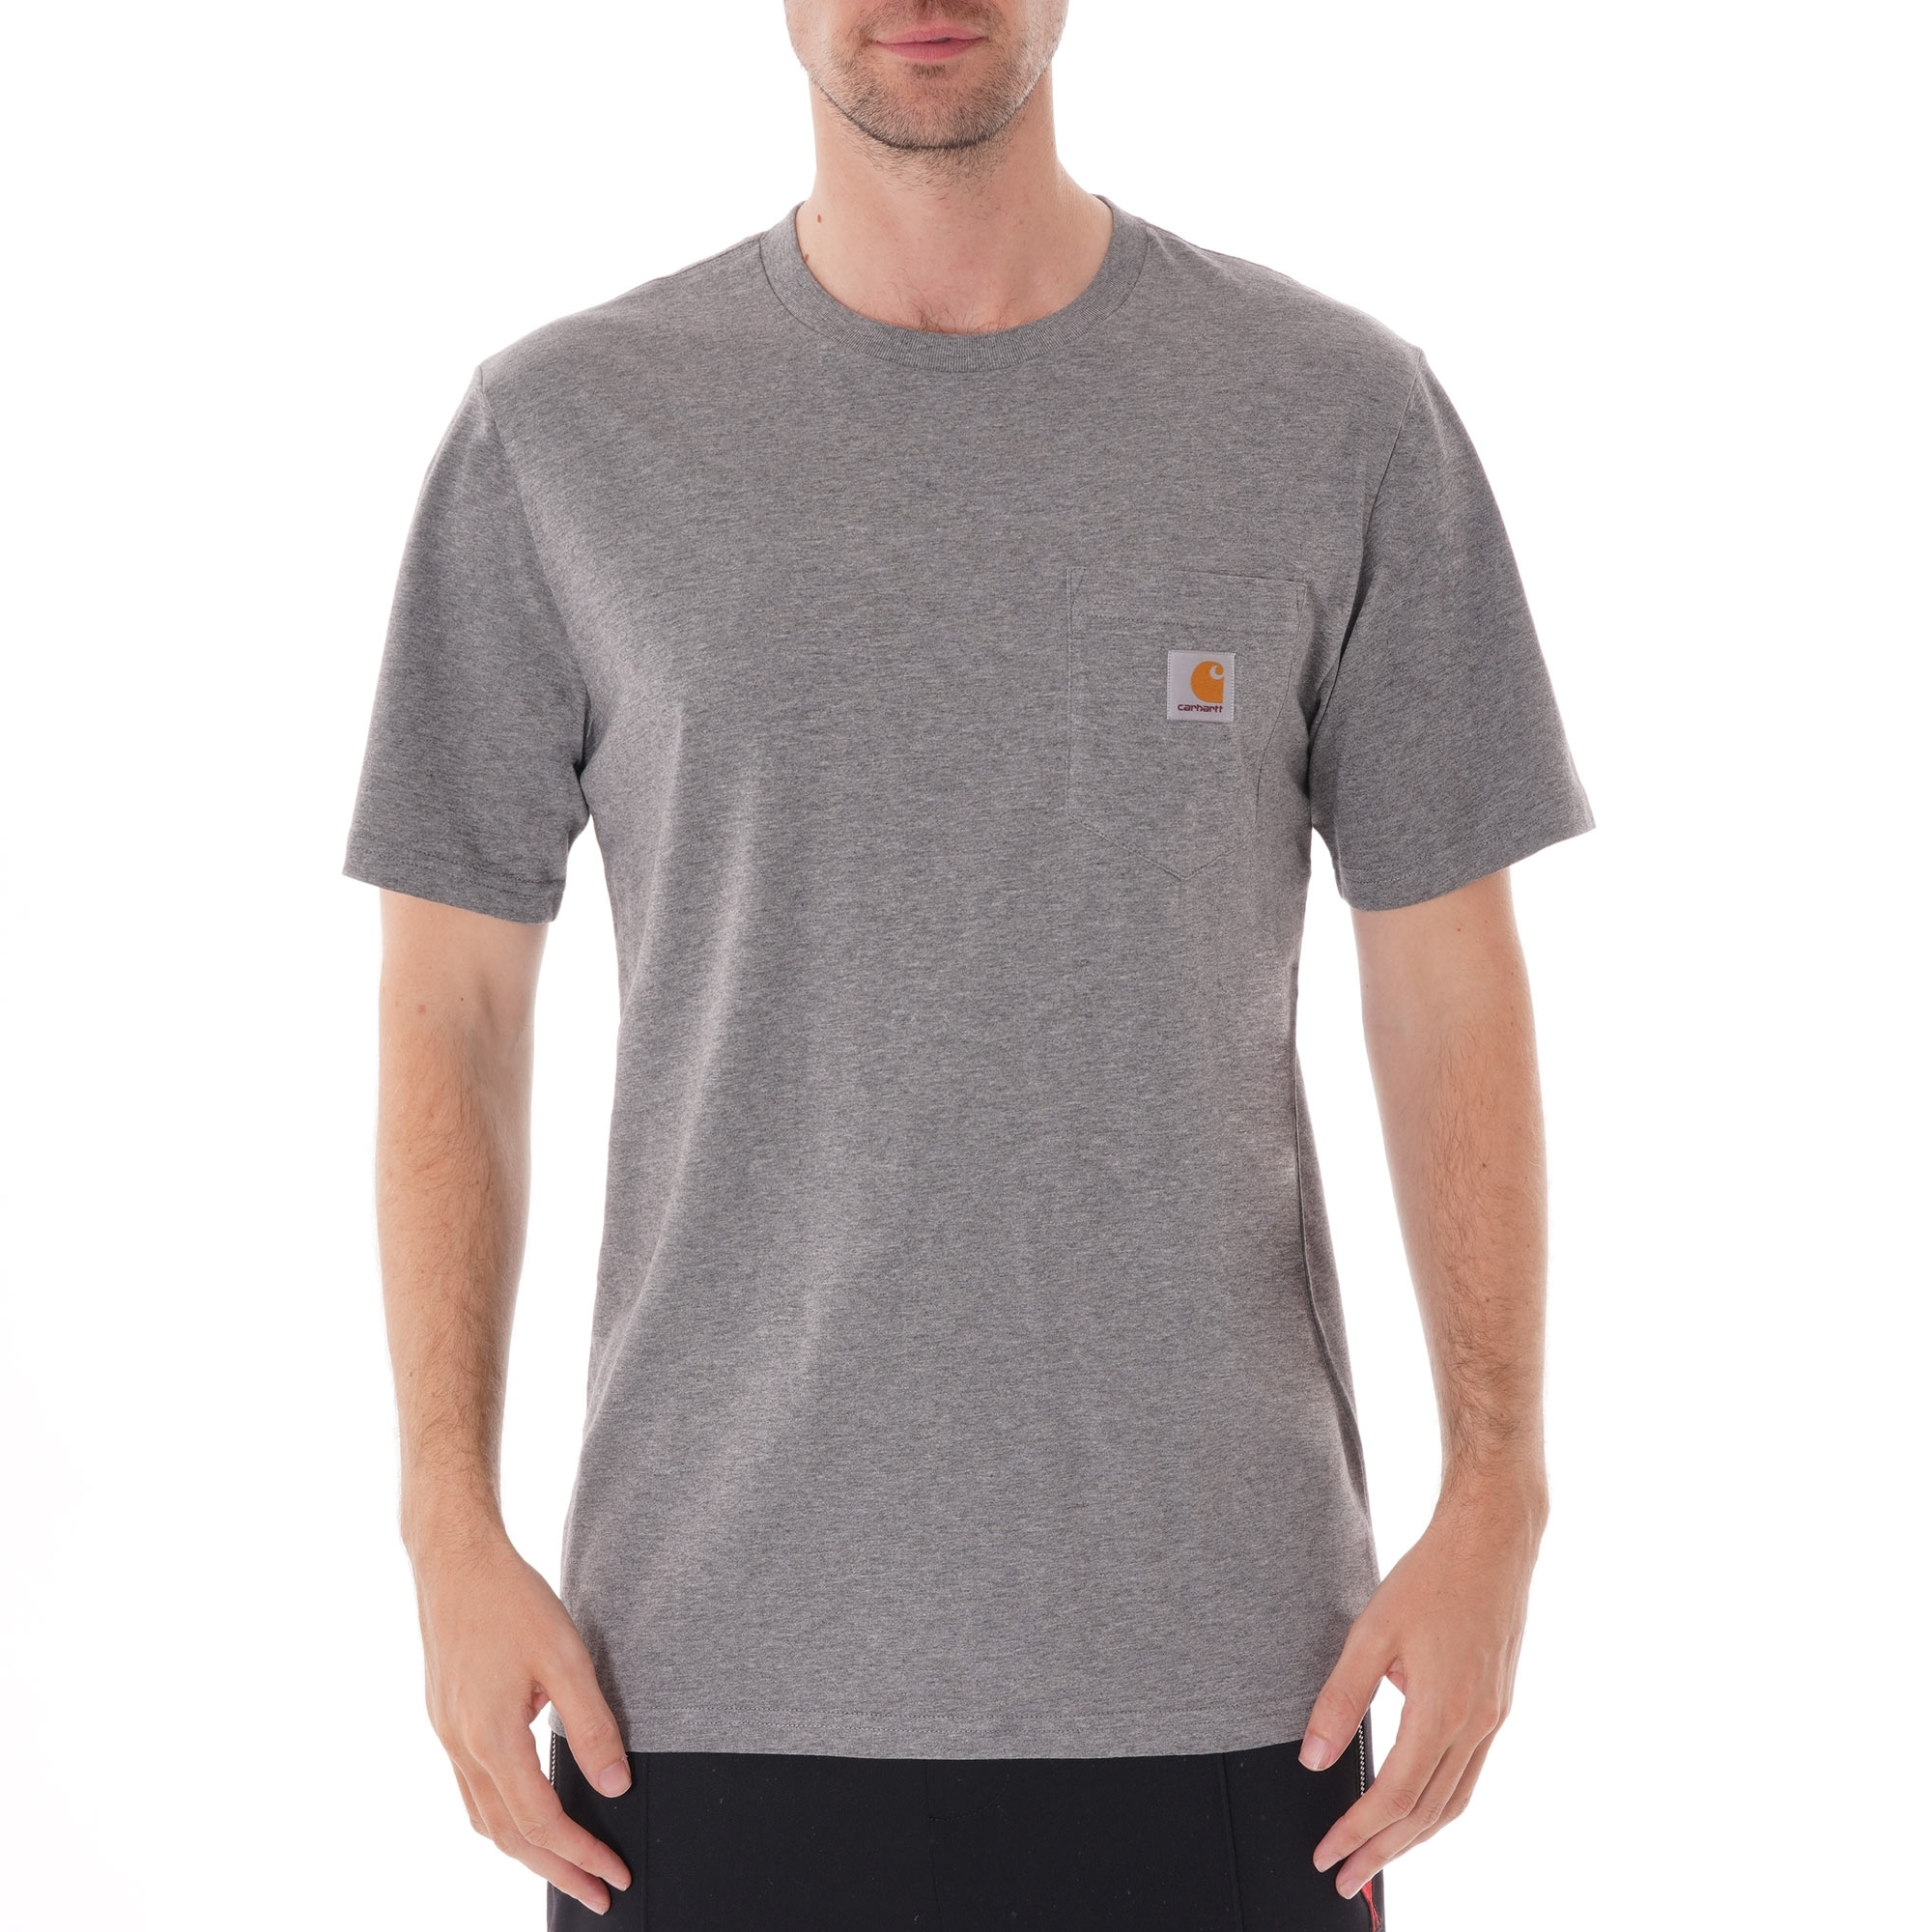 separation shoes first look great deals Pocket T-shirt - Grey